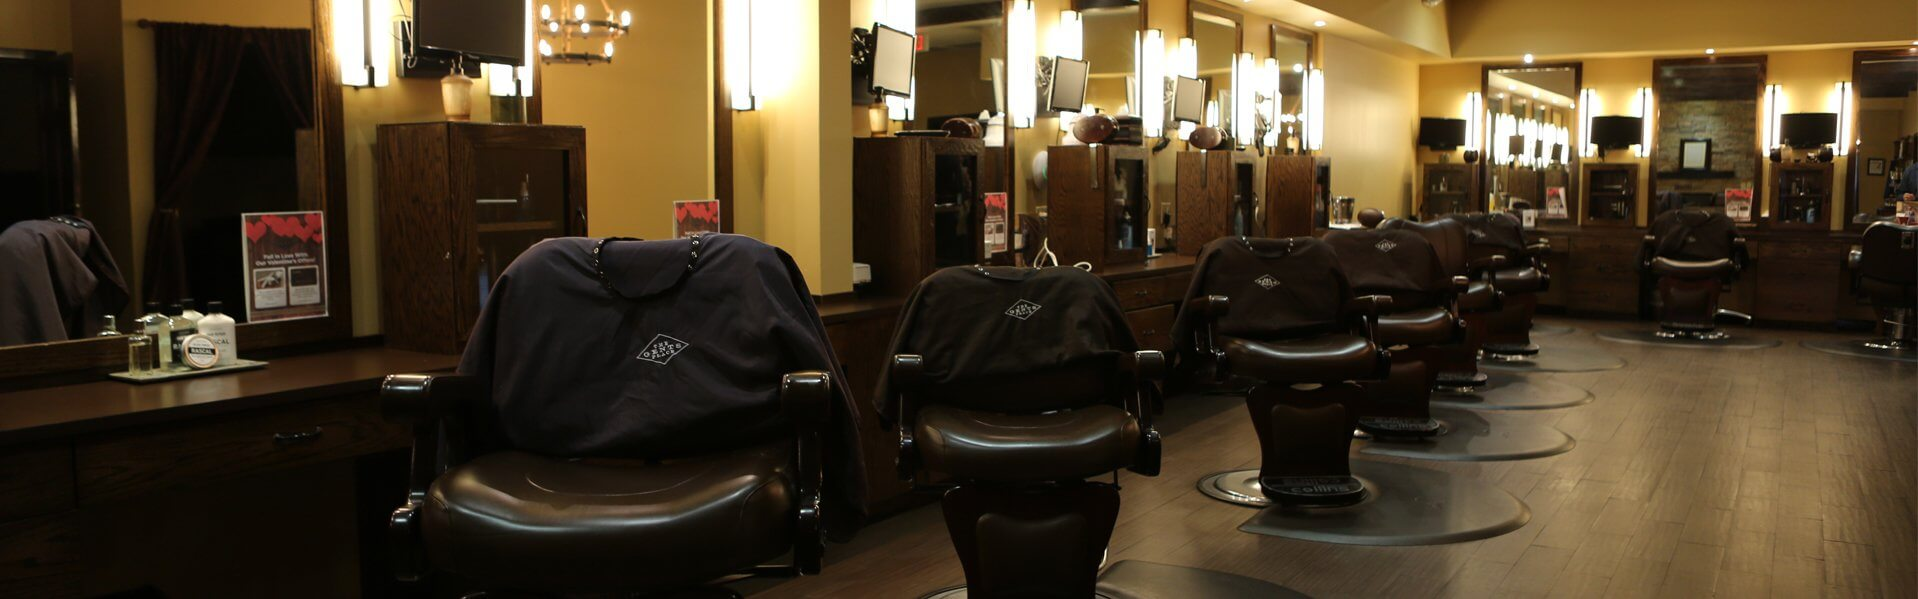 Page Banner - The Gents Place Mens Haircuts Near Me and Barber Shop in Frisco TX